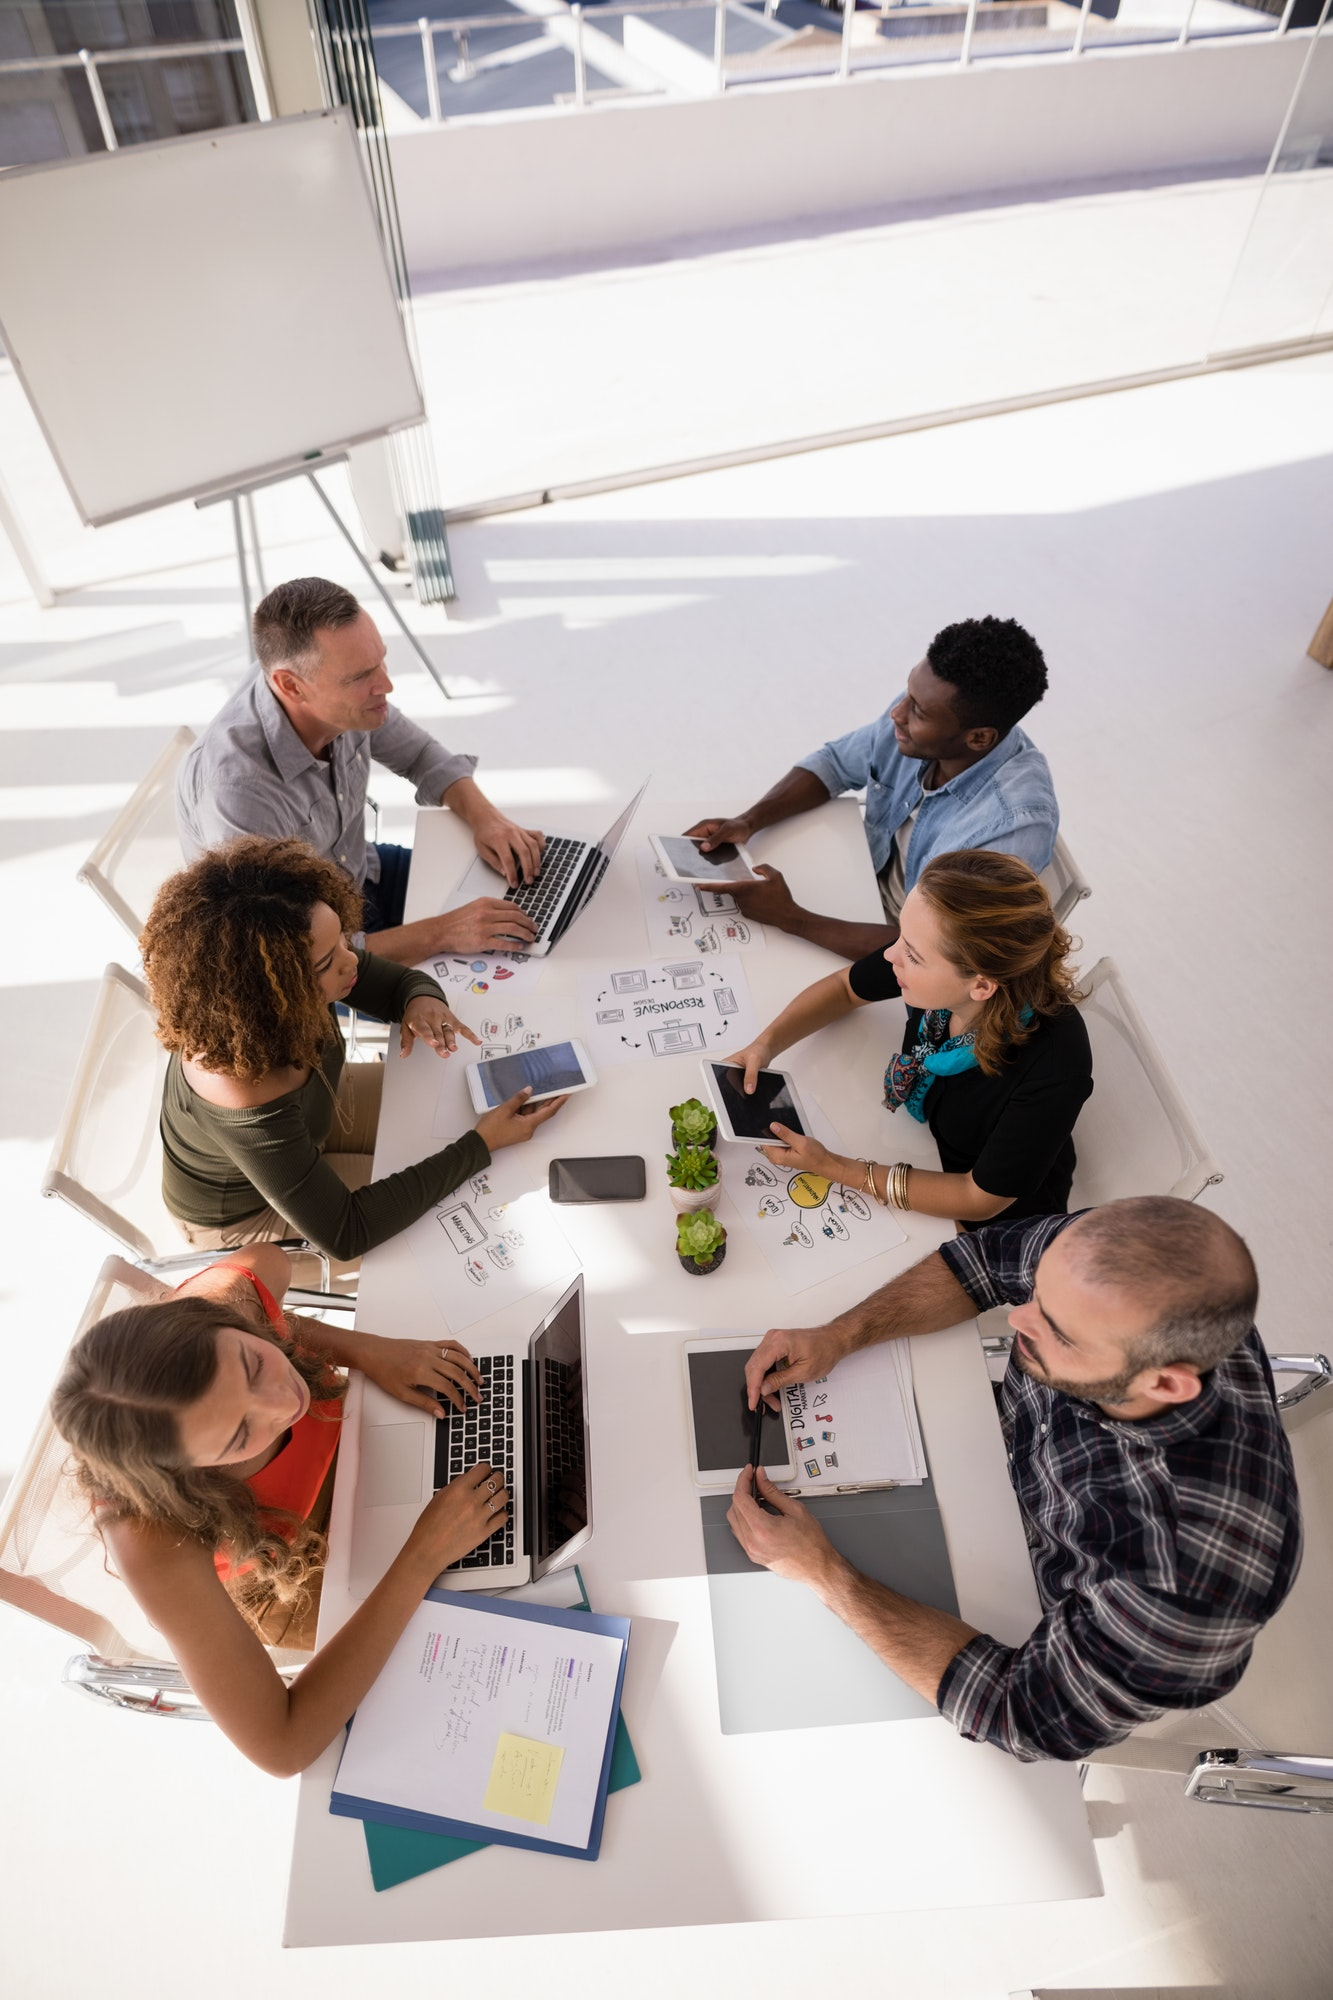 Executives interacting with each other during meeting